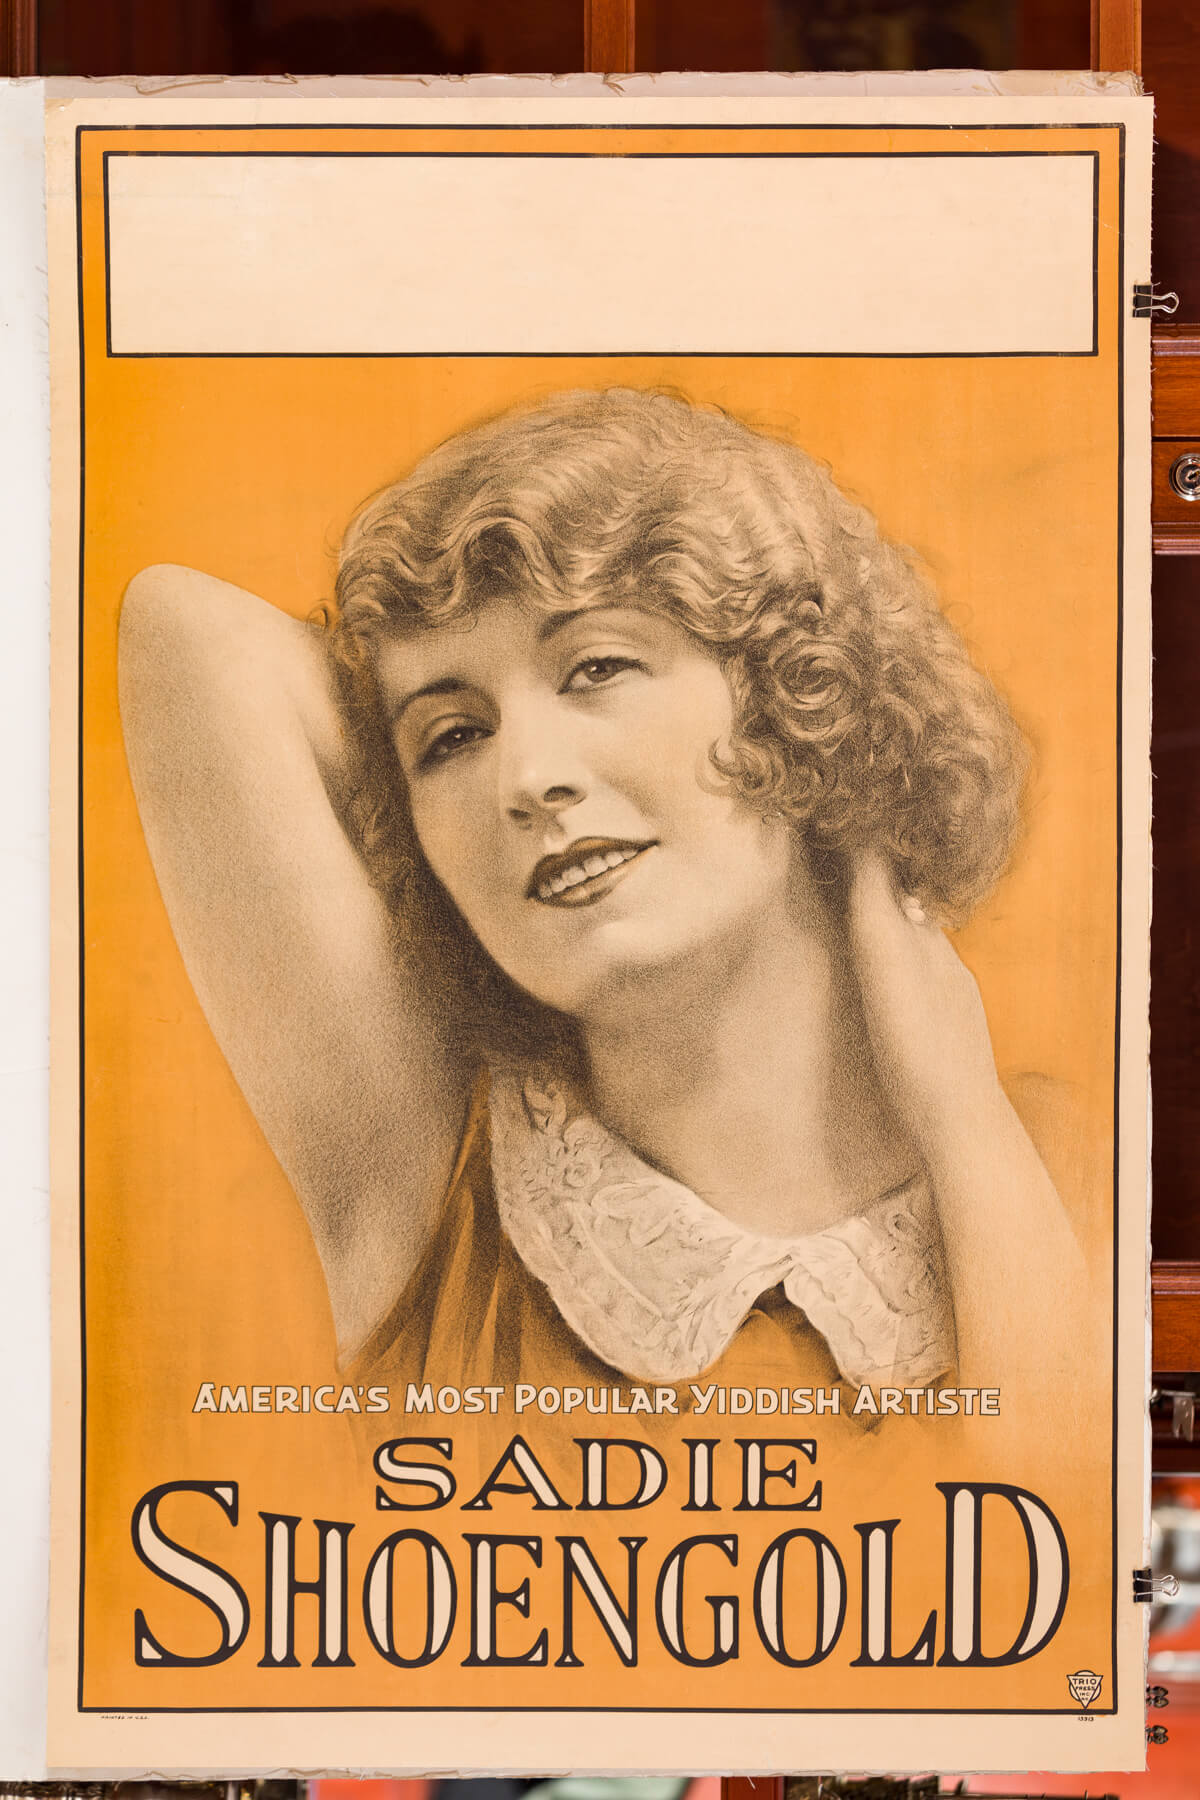 176. Yiddish Theatre Poster: Sadie Shoengold